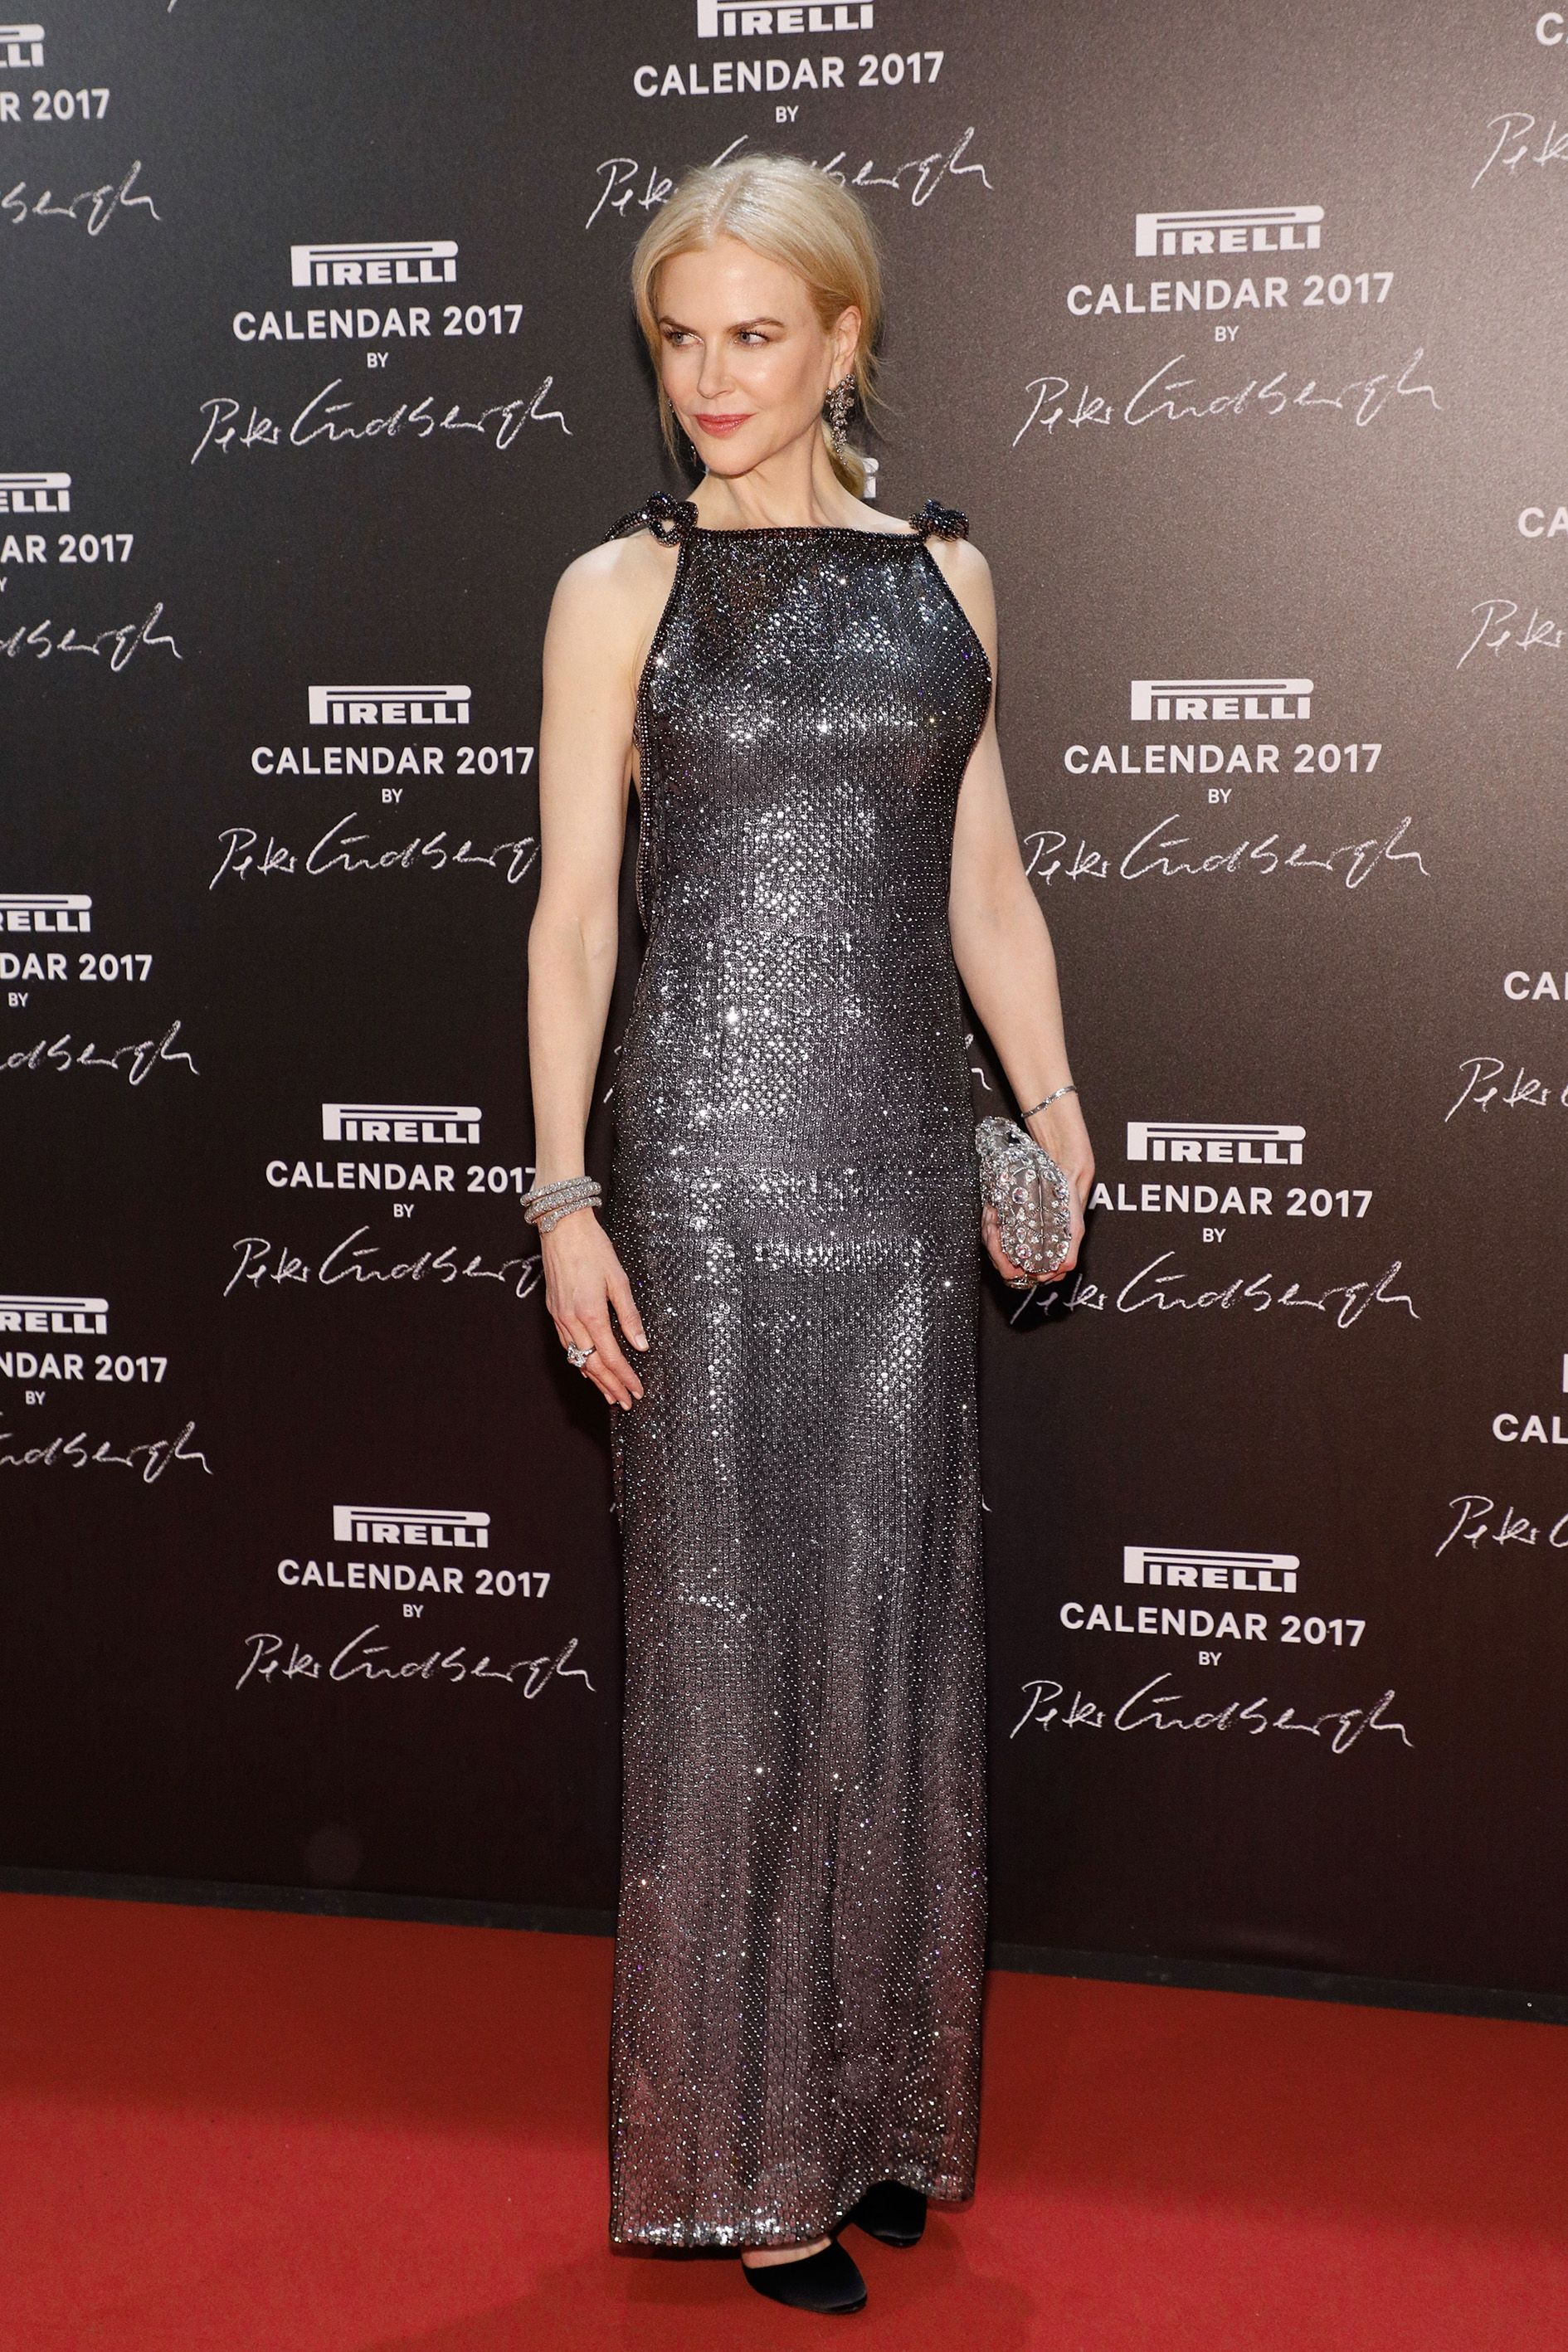 Nicole Kidman in a shimmering floor-length Giorgio Armani Privé gown, arriving last night for the Pirelli Calendar 2017 Gran Gala in Paris. #ArmaniStars